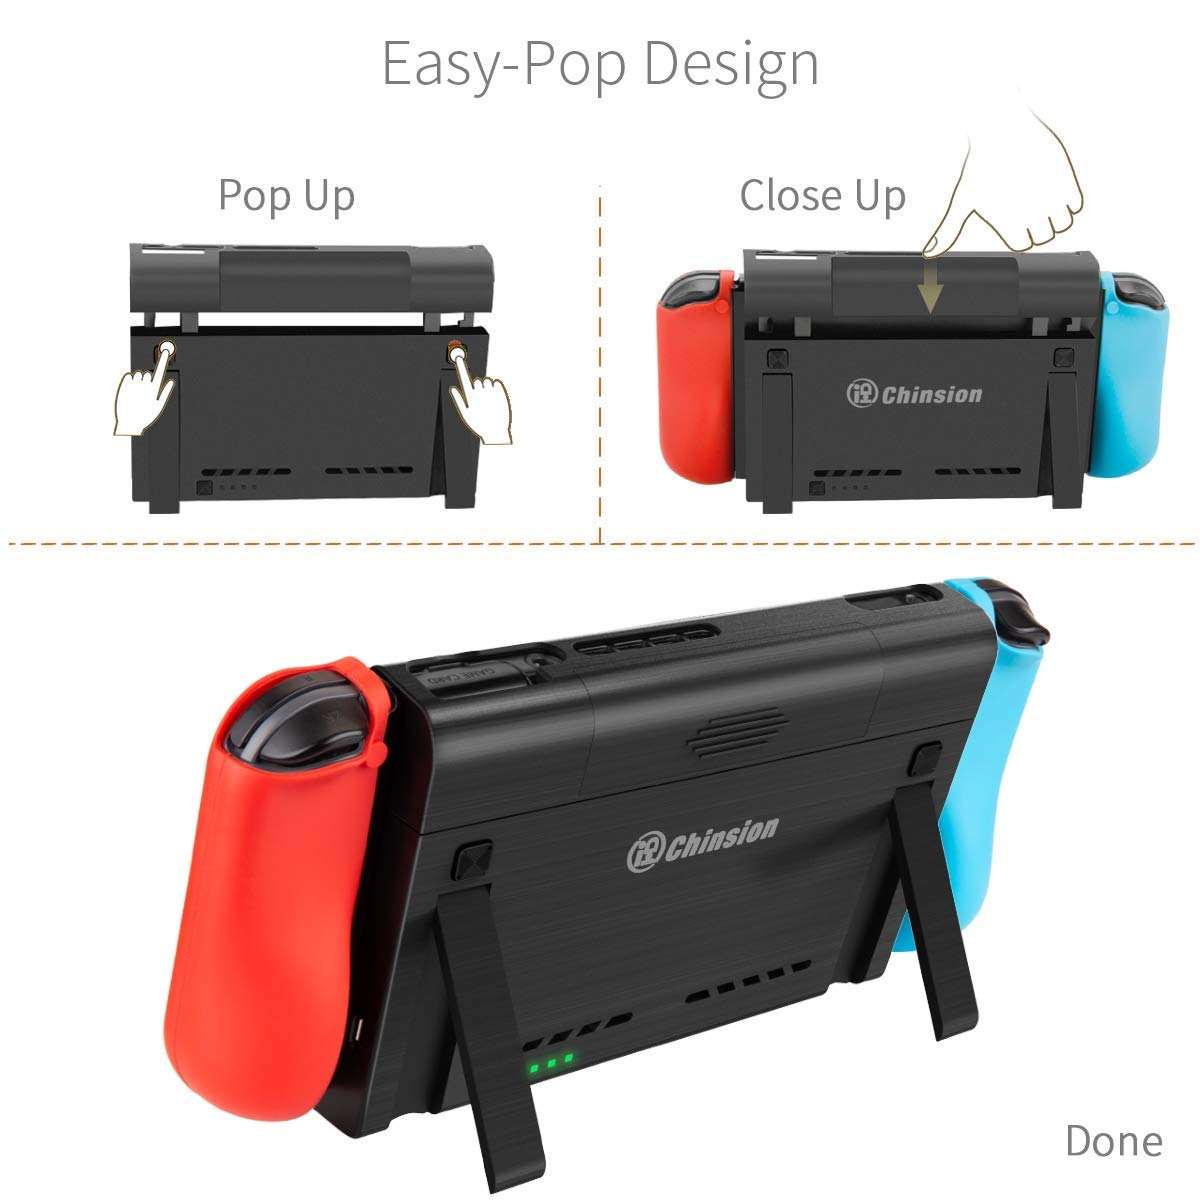 Battery Charger Case for Nintendo Switch, Portable Switch Battery Case with 10, 000 Mah Extended Travel Power Bank, Kickstand and USB-C Charging Cable by NSBCC (Image #4)